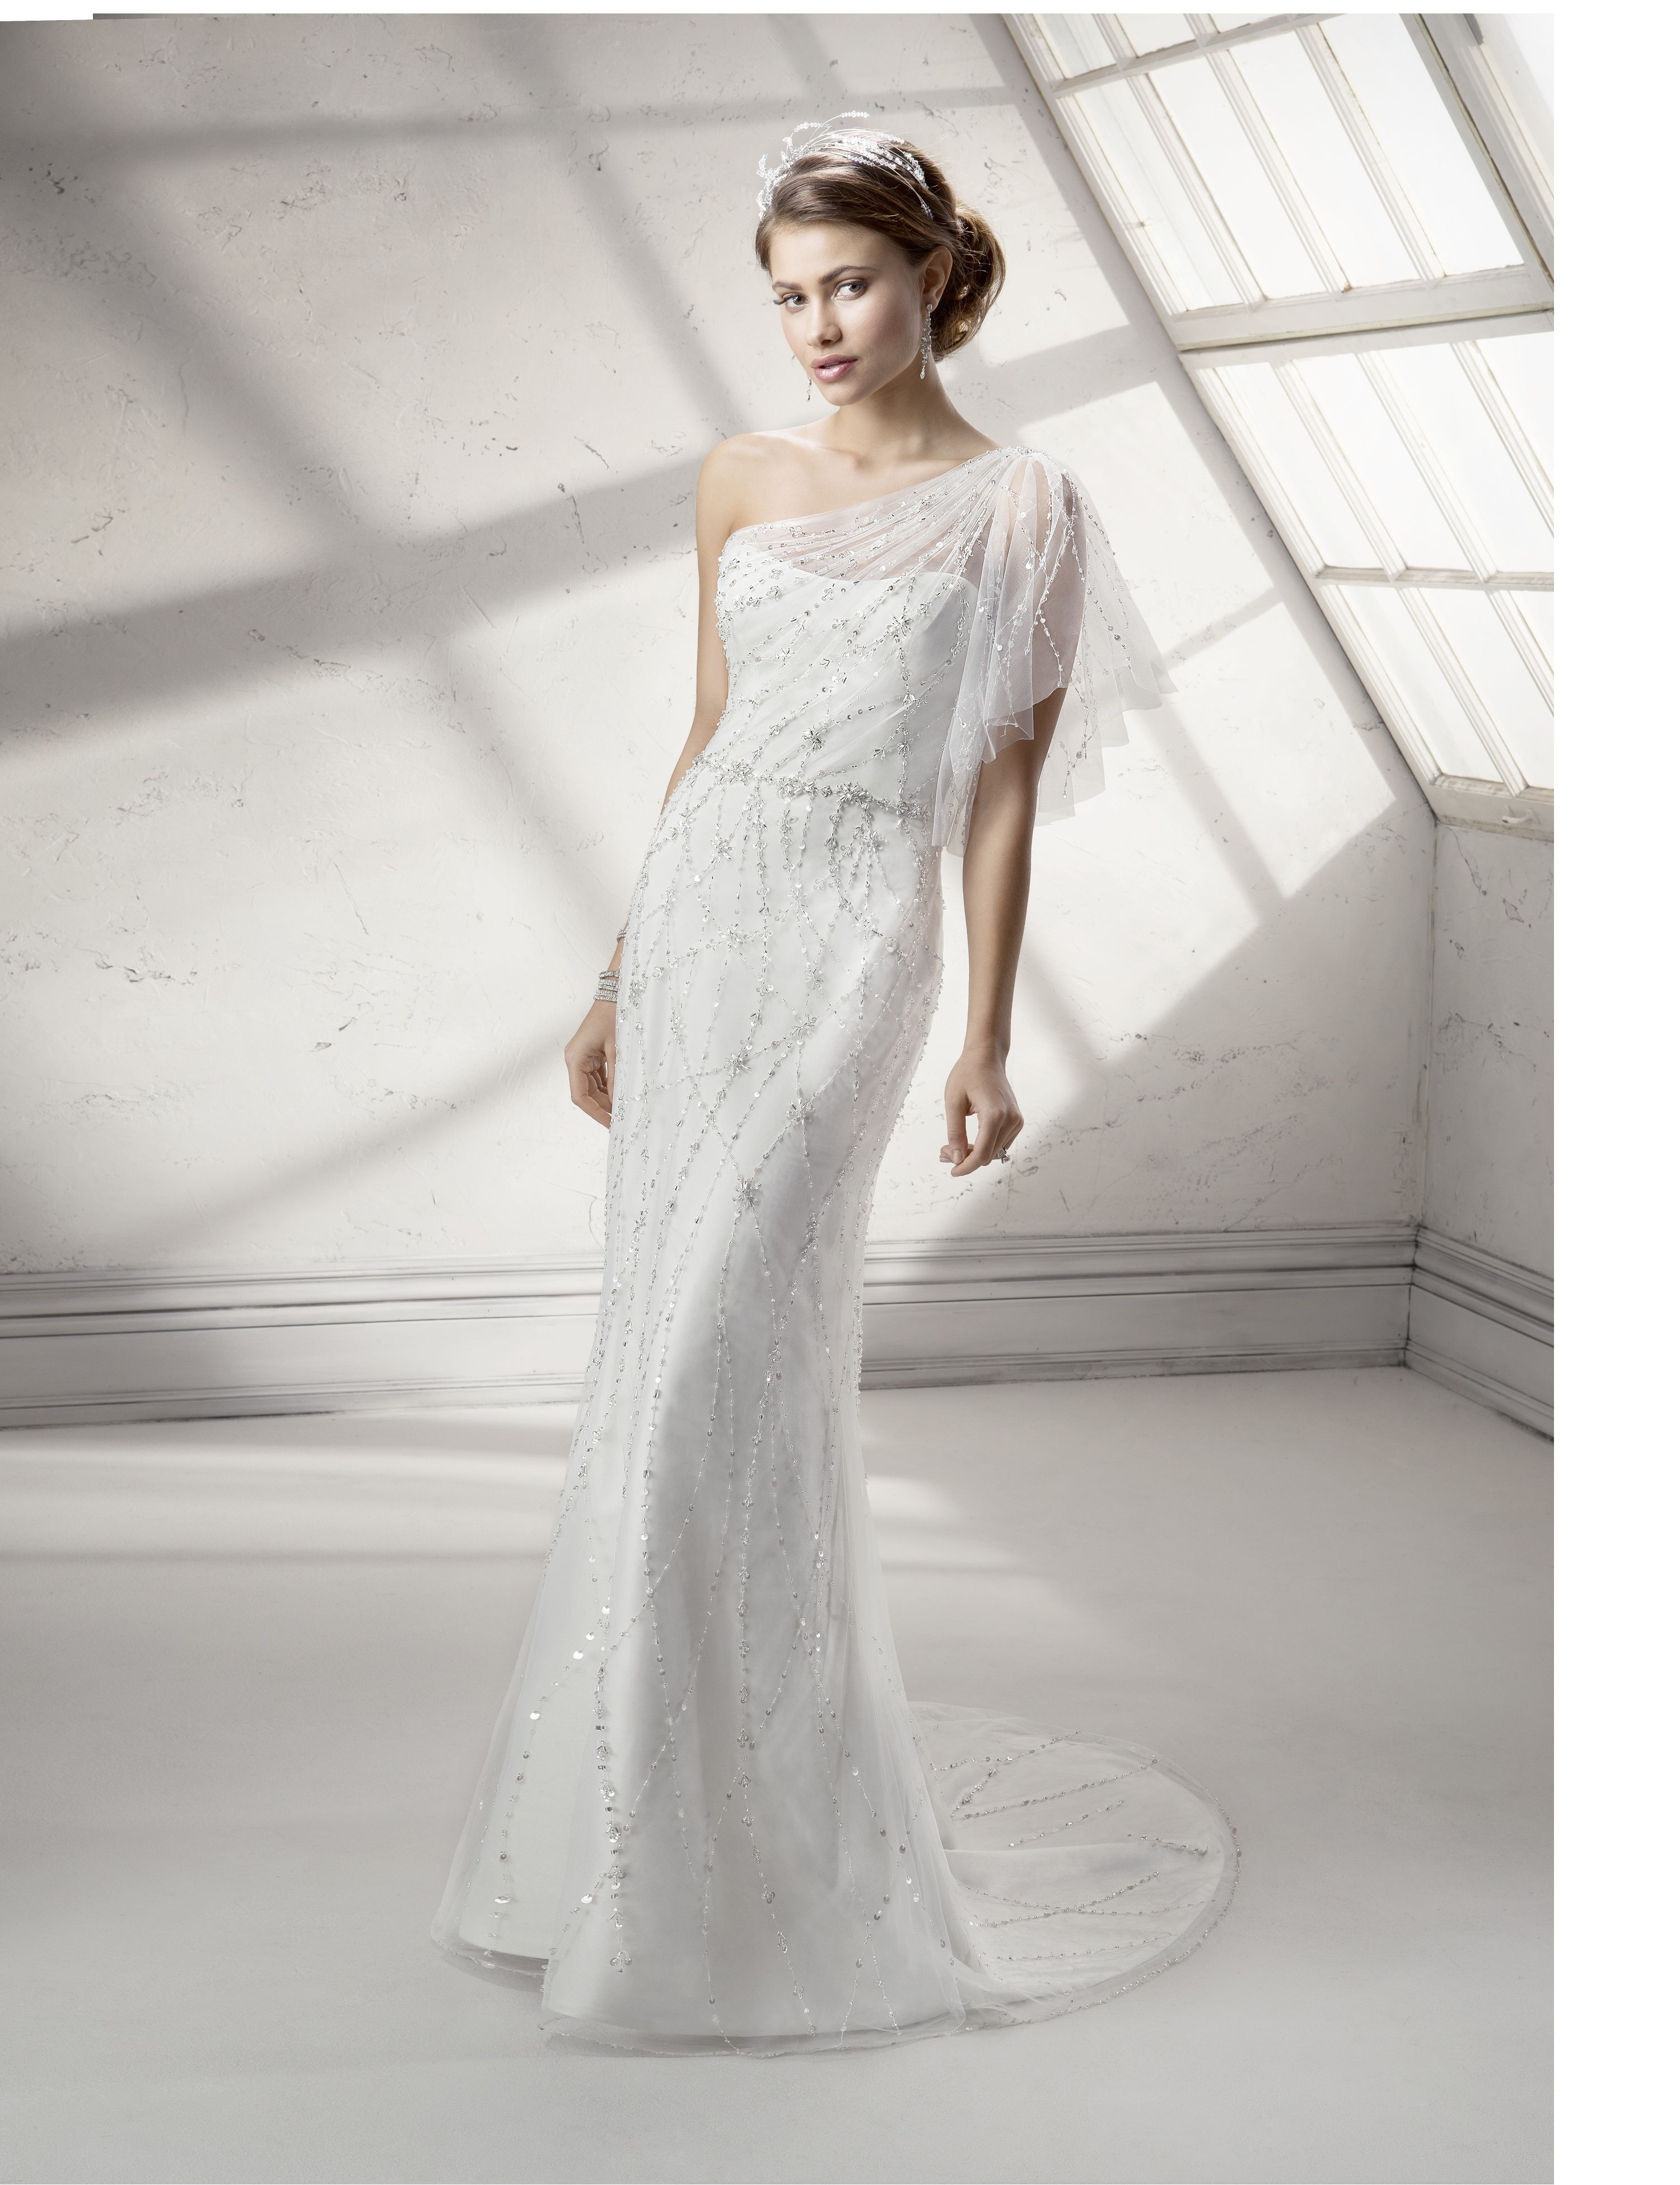 Skye, part of our gorgeous new collection. #weddingdress